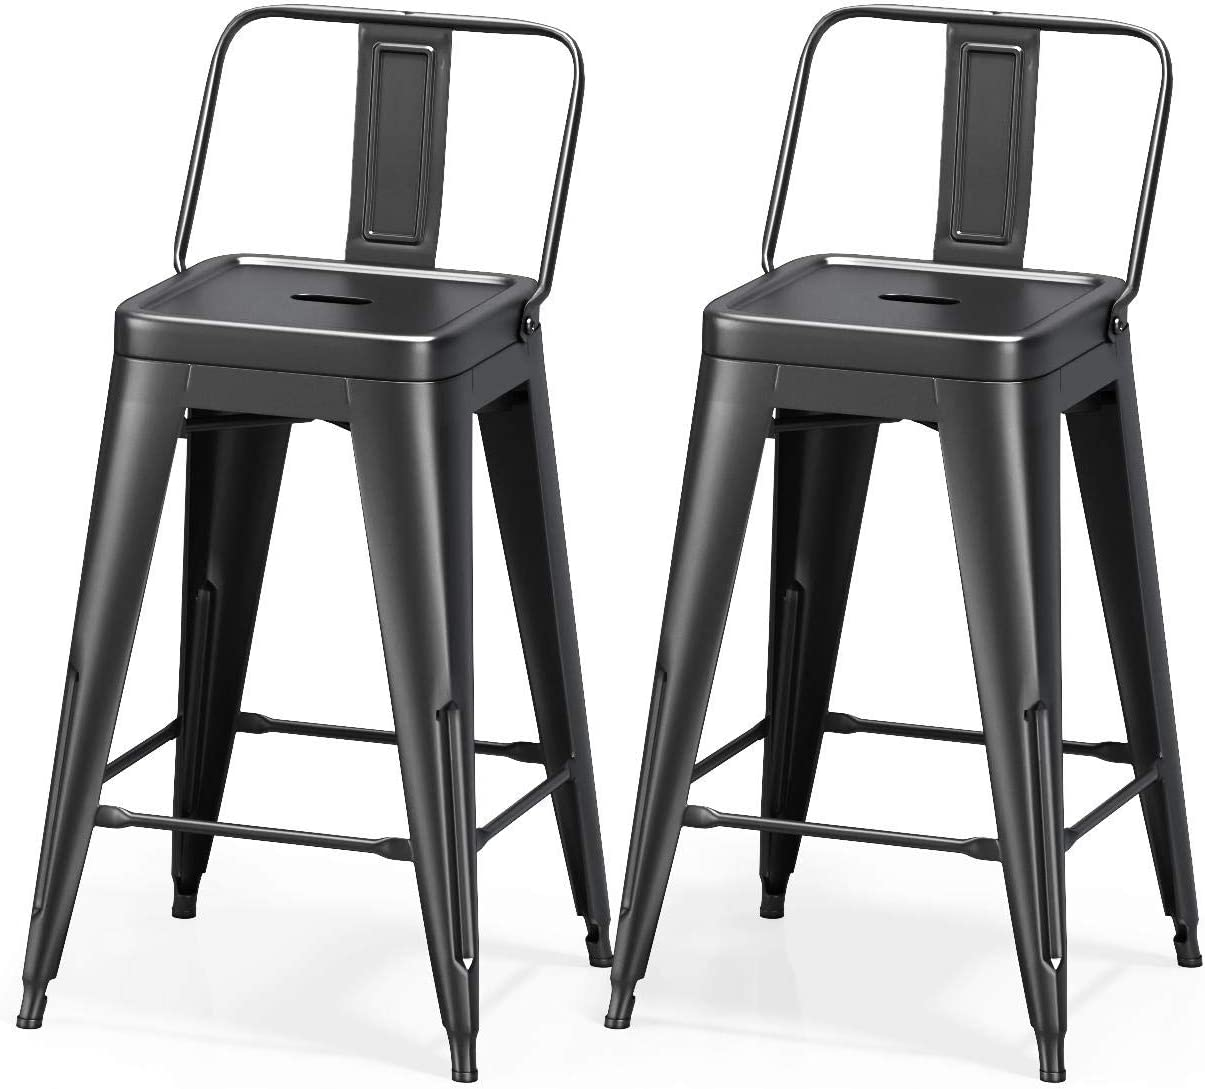 VIPEK 24 Inches Metal Counter Bar Stools Dining Chairs Bar Counter Stools Set of 2 Mid Back Side Chairs 24 Height Barstool Patio Bar Chairs Home Kitchen Dining Stool Bistro Cafe, Matte Black